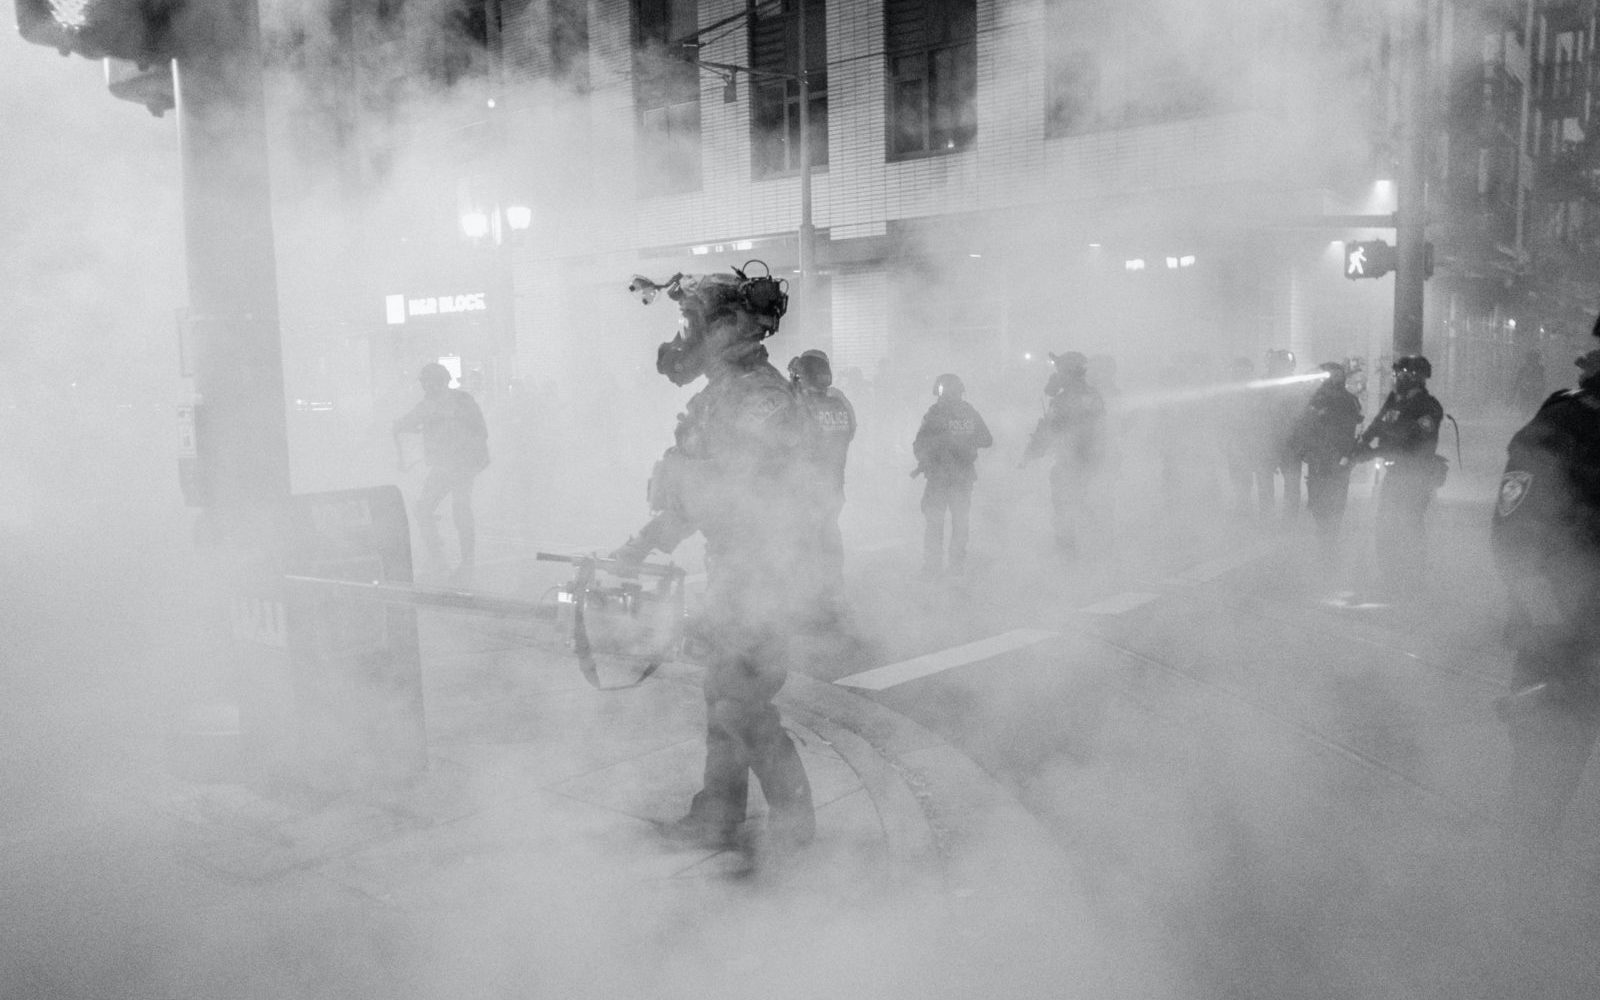 Environmental, public health, and social justice groups file legal challenge against DHS citing lack of analysis on impacts of teargas to human health and the environment